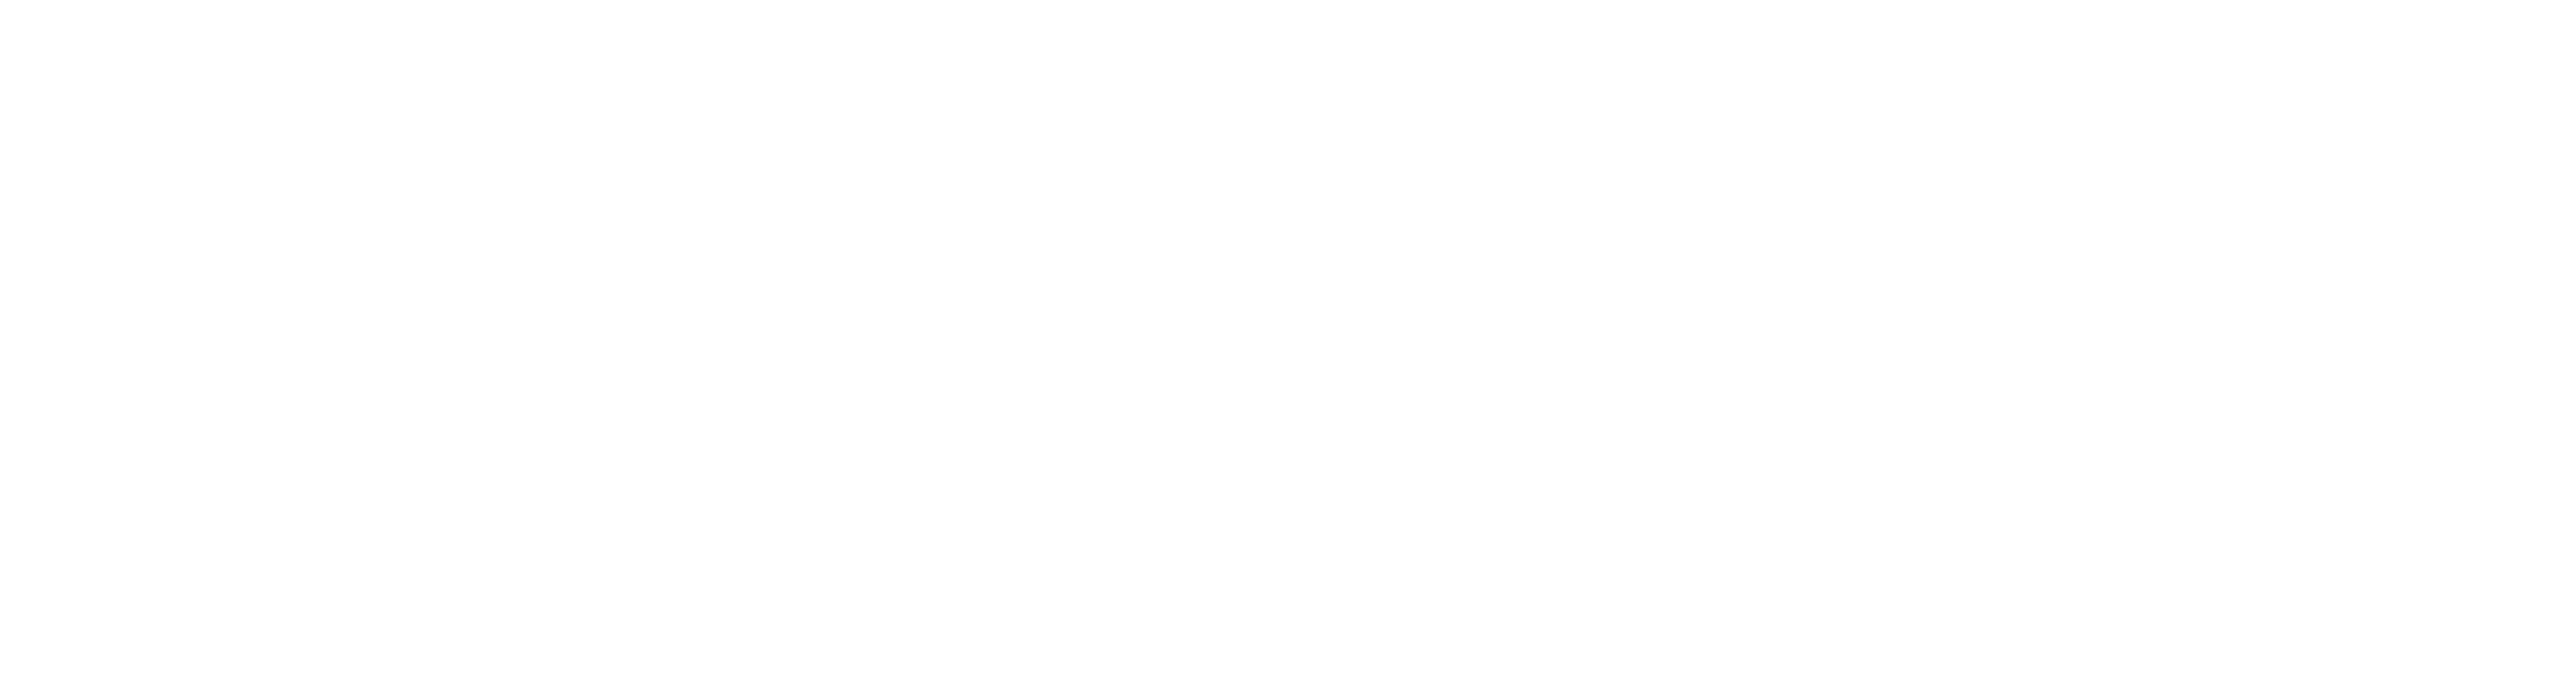 000_Fulbright_logo.png